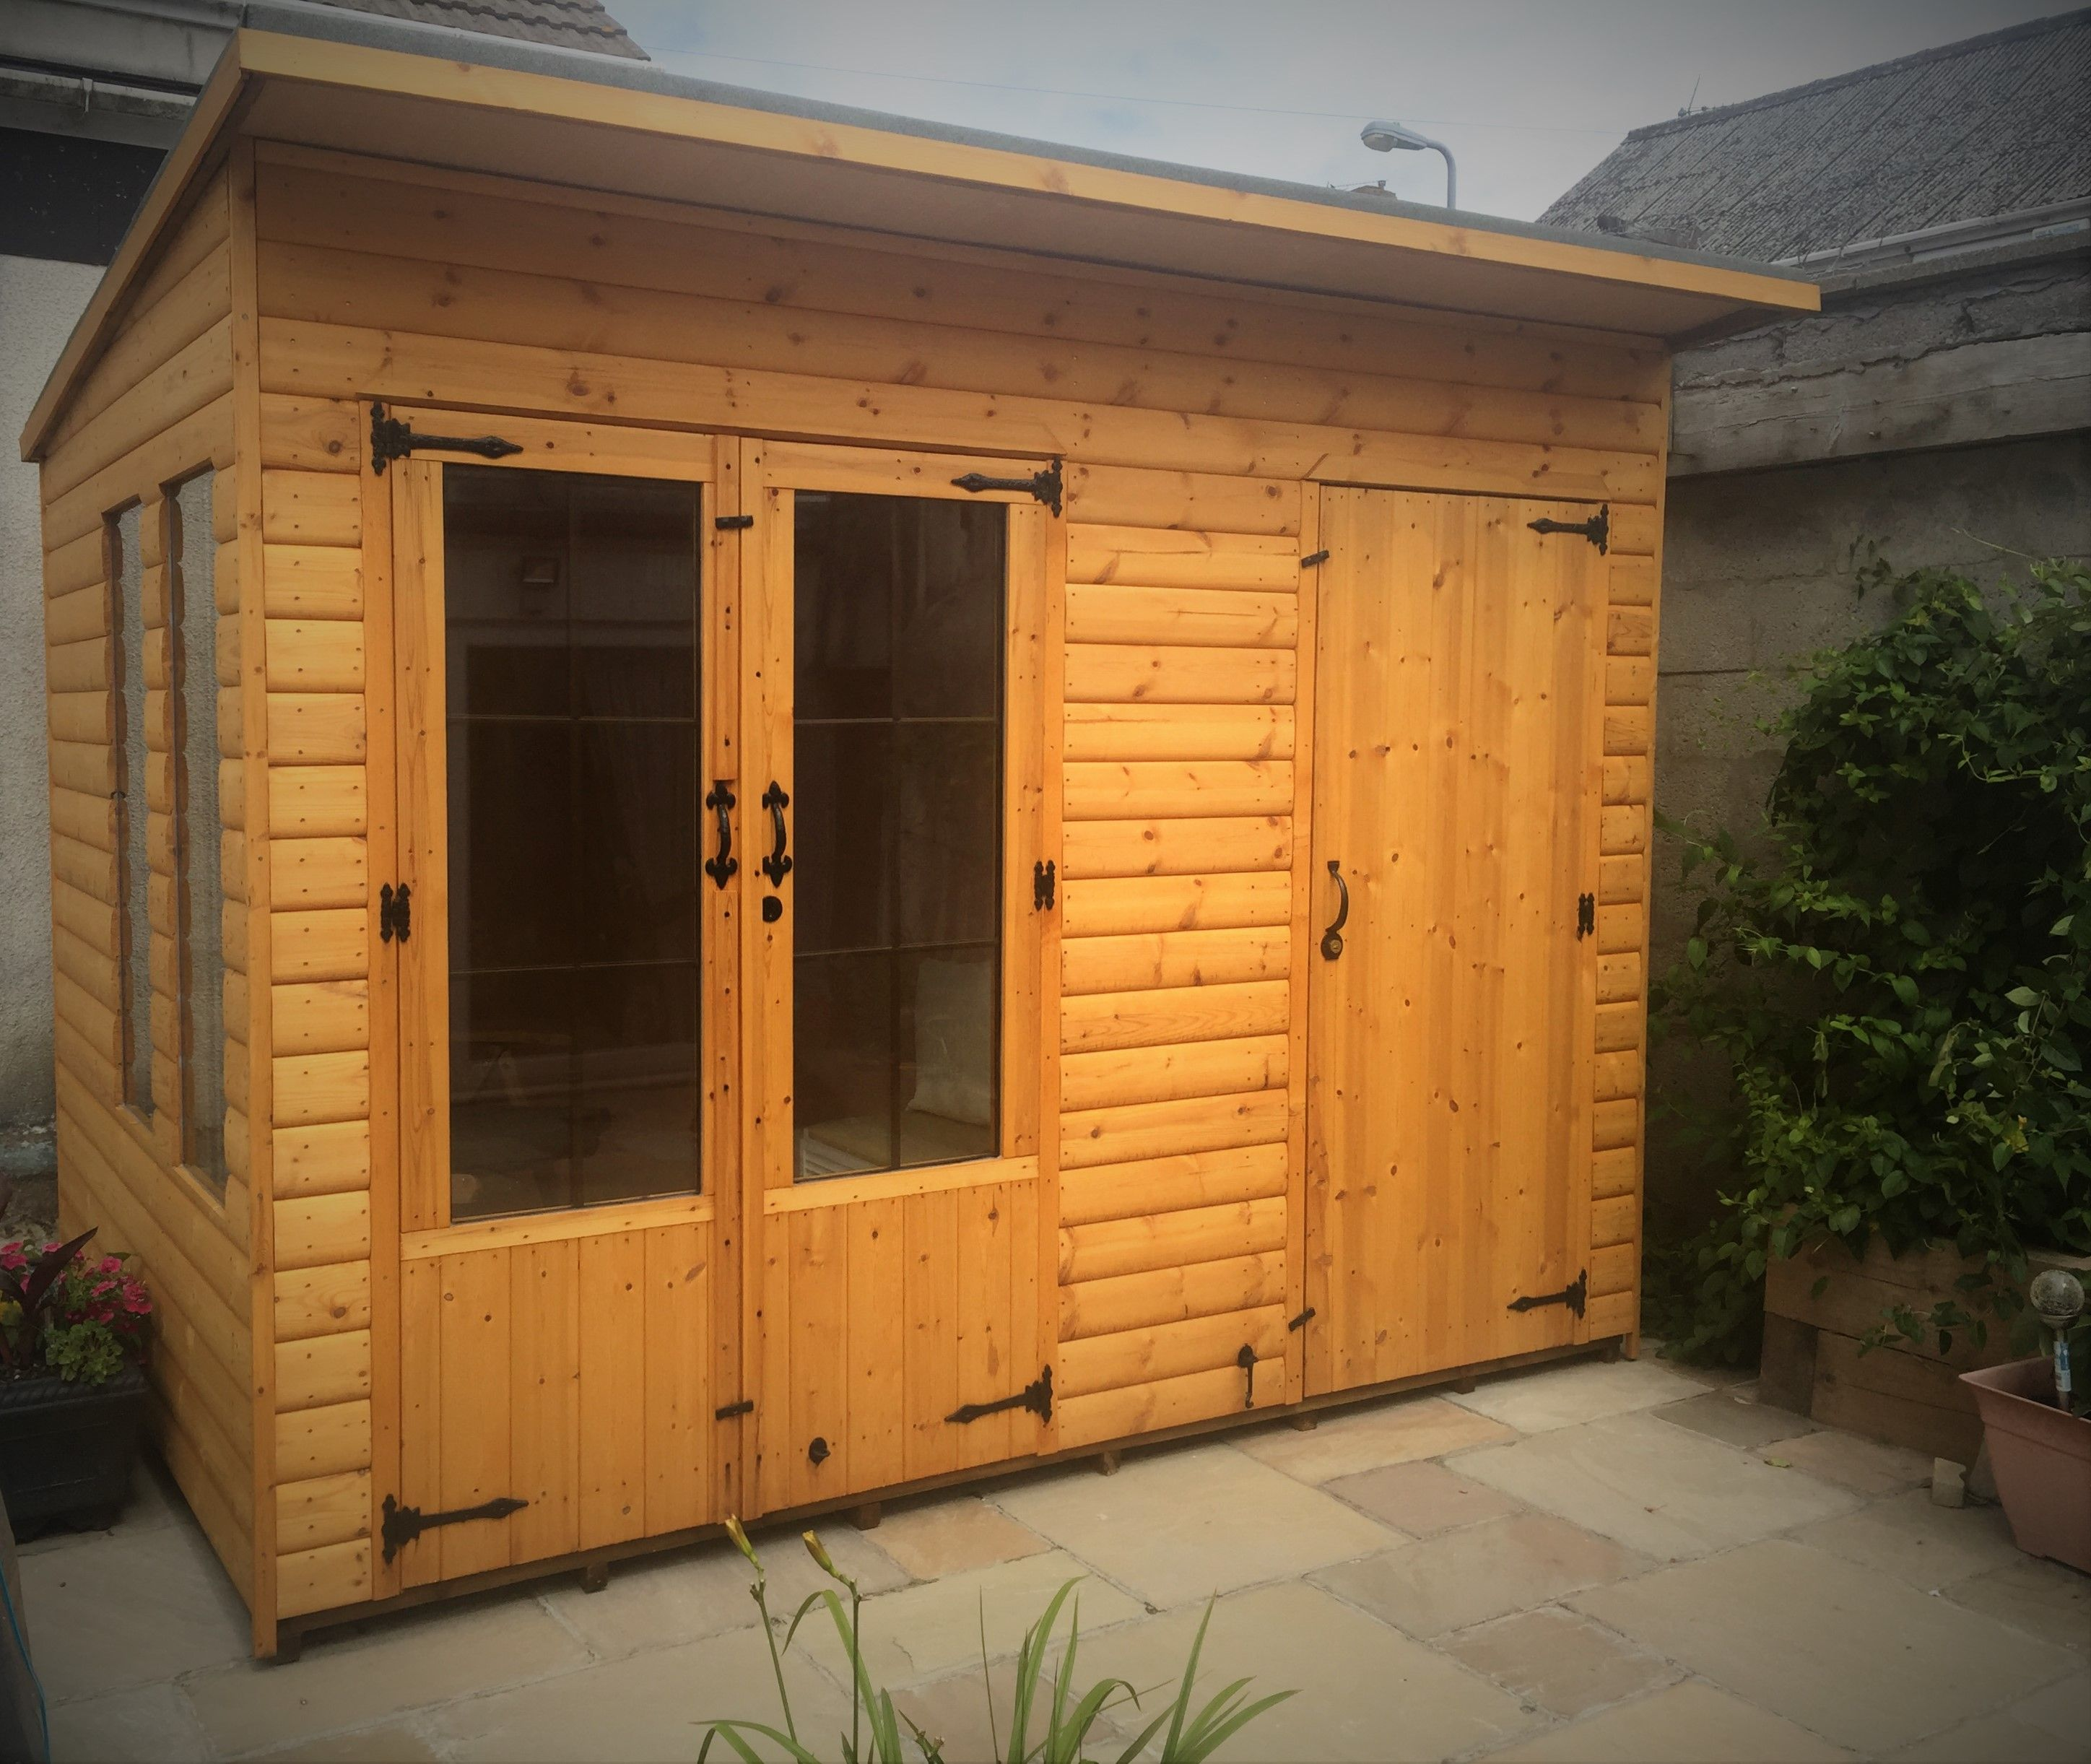 The Leading Supplier Of Timber Sheds Workshops Wendy Play Houses Wooden Fencing Timber Decking In Wales Summer House Timber Garden Sheds Timber Deck